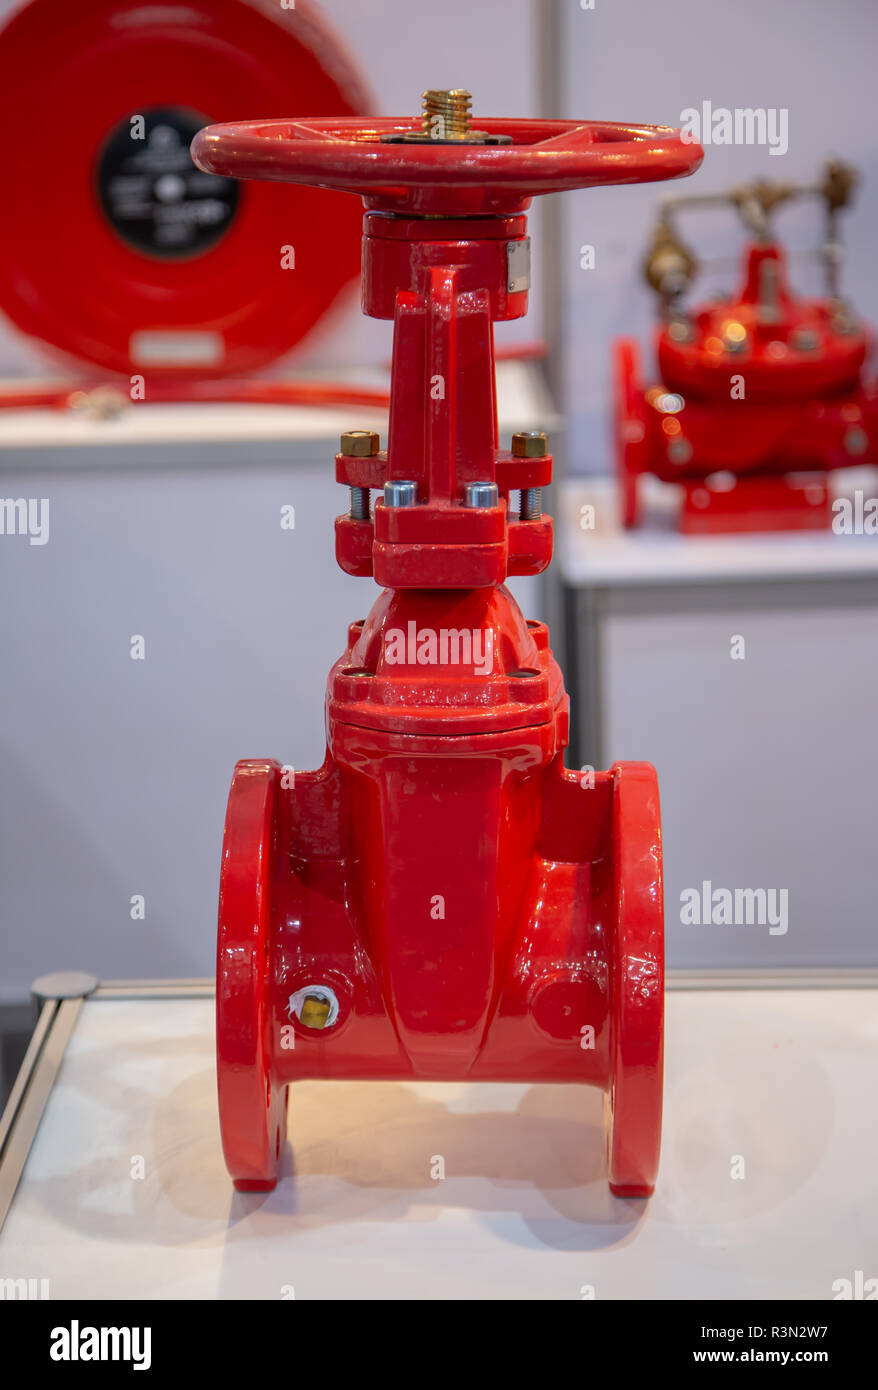 Gate valve flange connection non rising stem - Stock Image